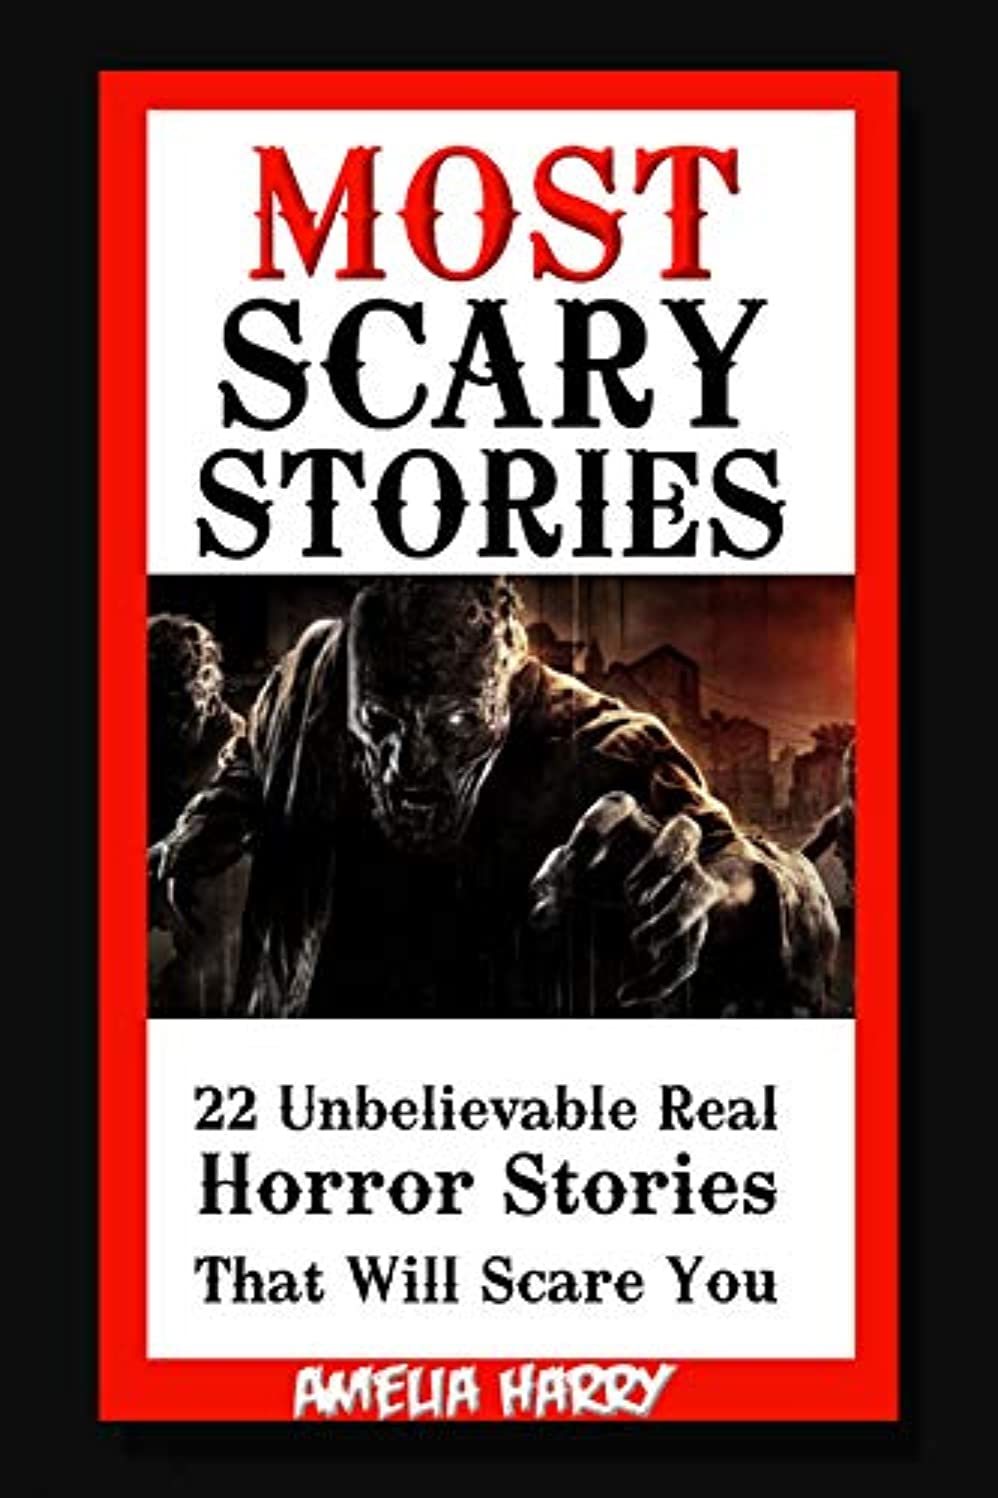 スナップボート適切にMOST SCARY STORIES BOOK: 22 Unbelievable but Real Horror Stories That Will Scare You... (English Edition)